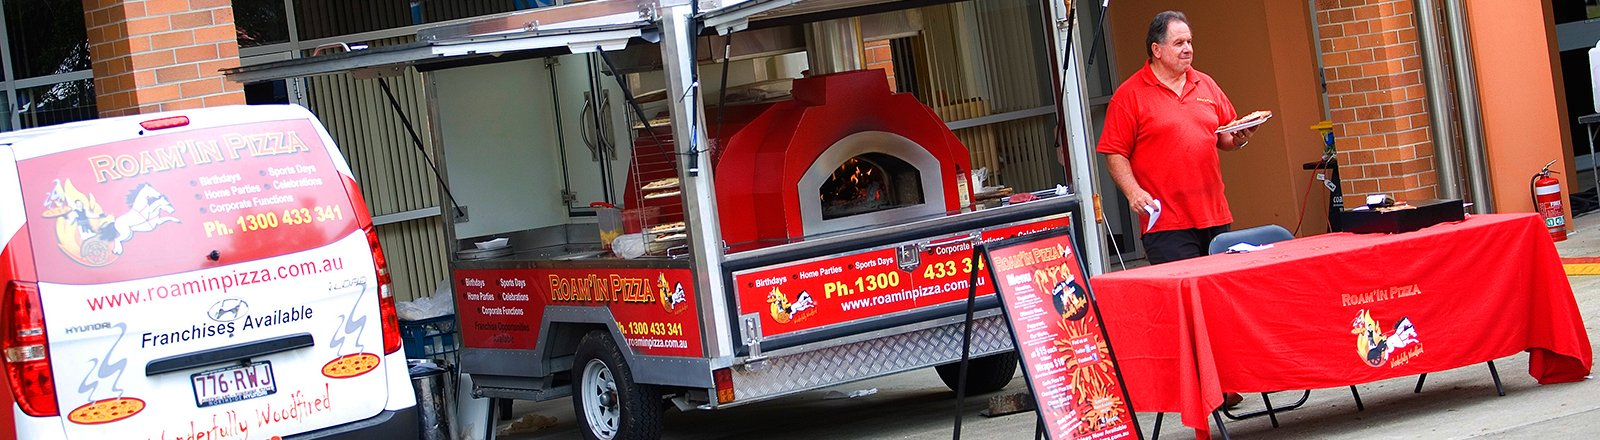 Mobile Pizza Catering Brisbane Roam'in Pizza